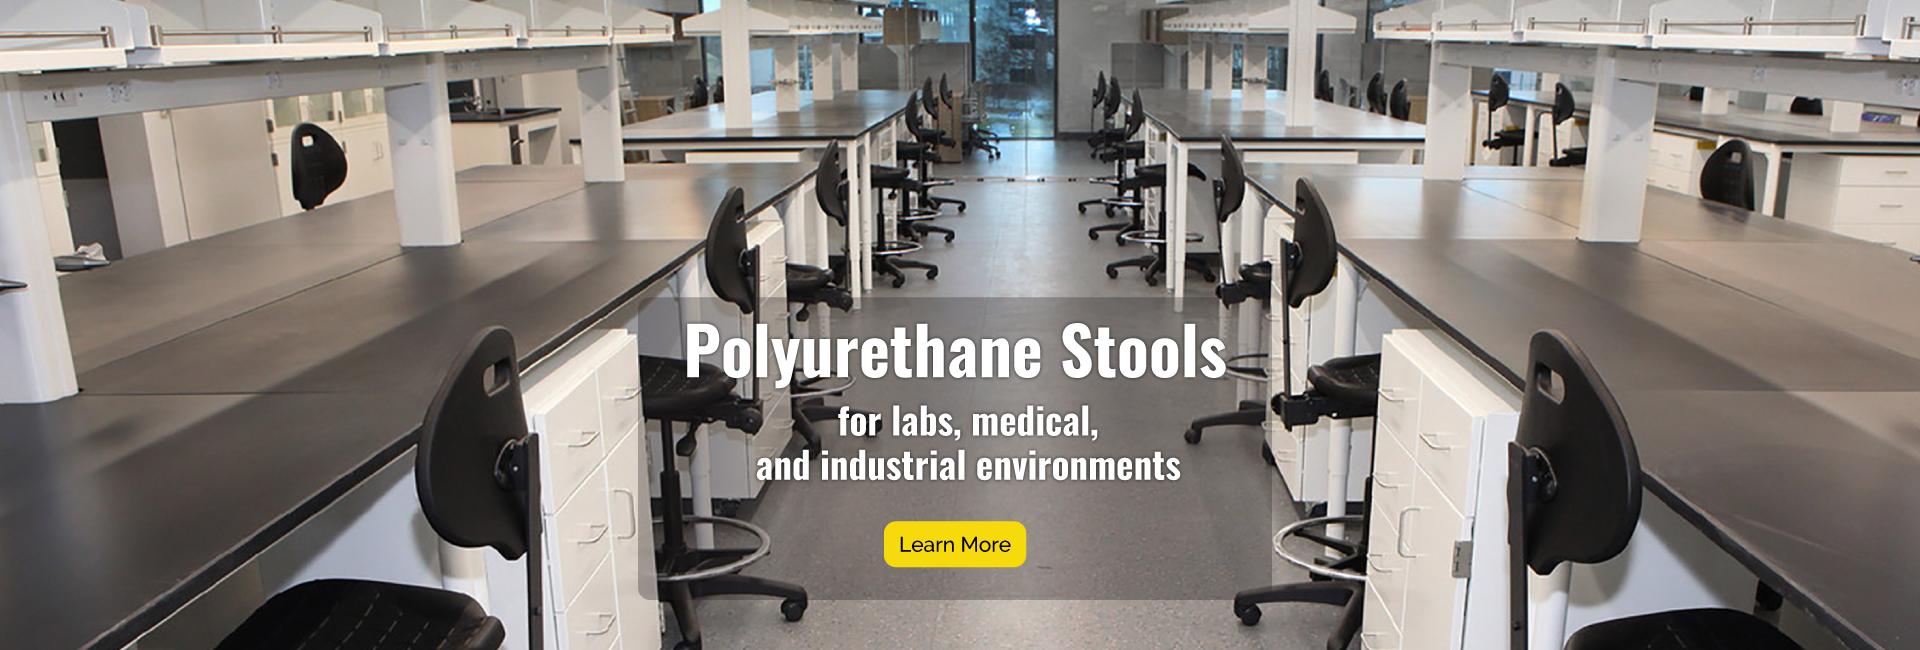 Polyrurethane Stools for labs, medical and industrial environments